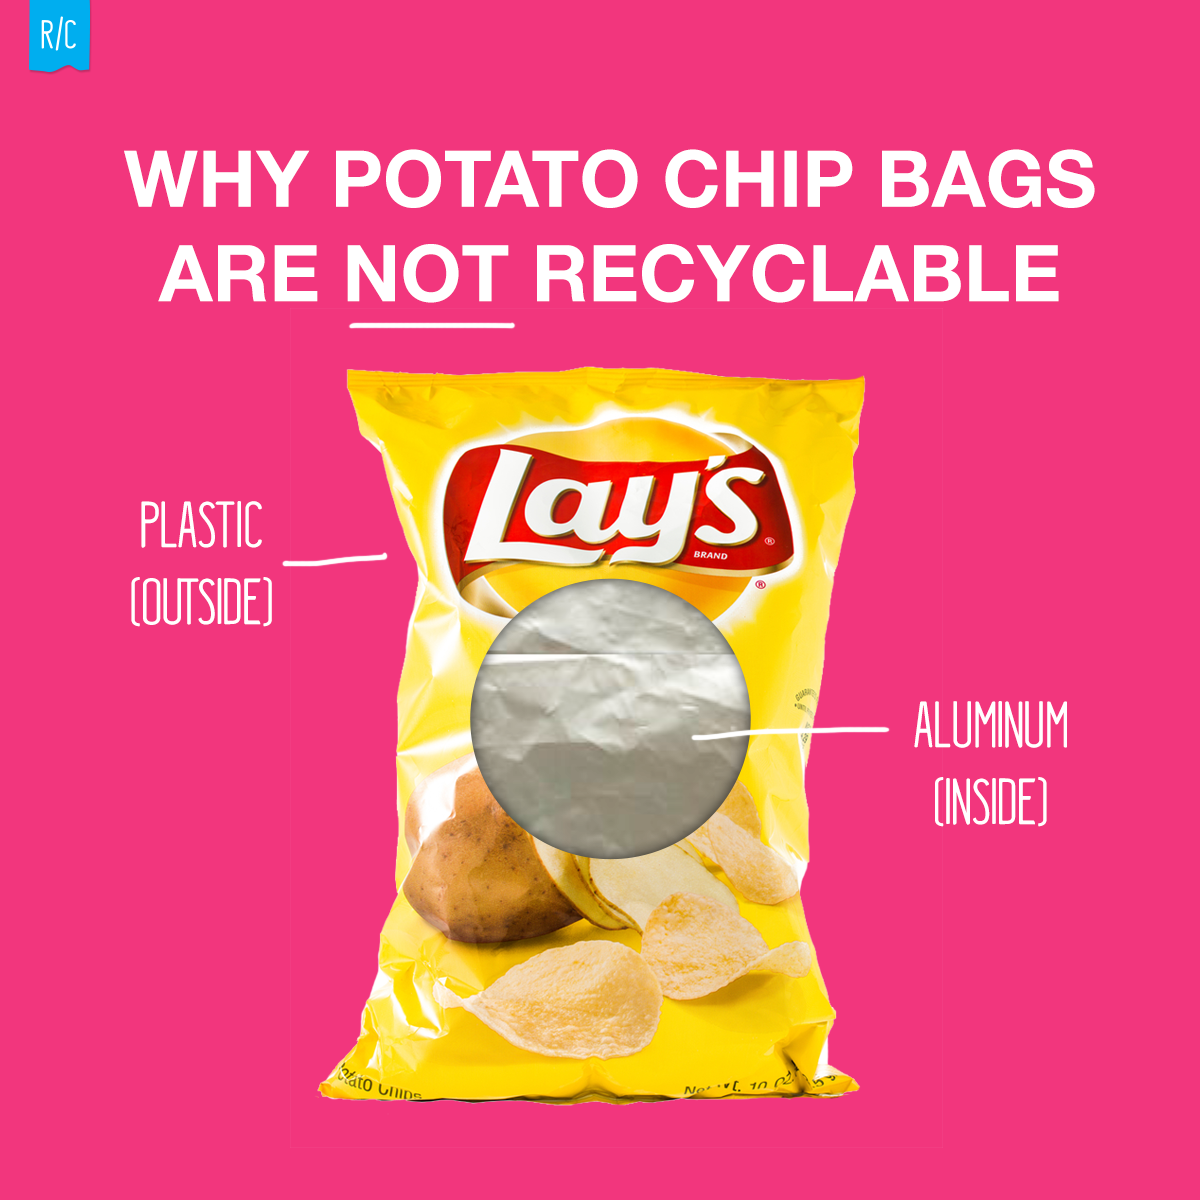 It S Too Costly To Separate The Plastic From The Aluminum So Potato Chip Bags Are Not Accepted Curbside For Recyclin Recycling Information Recycling Chip Bags